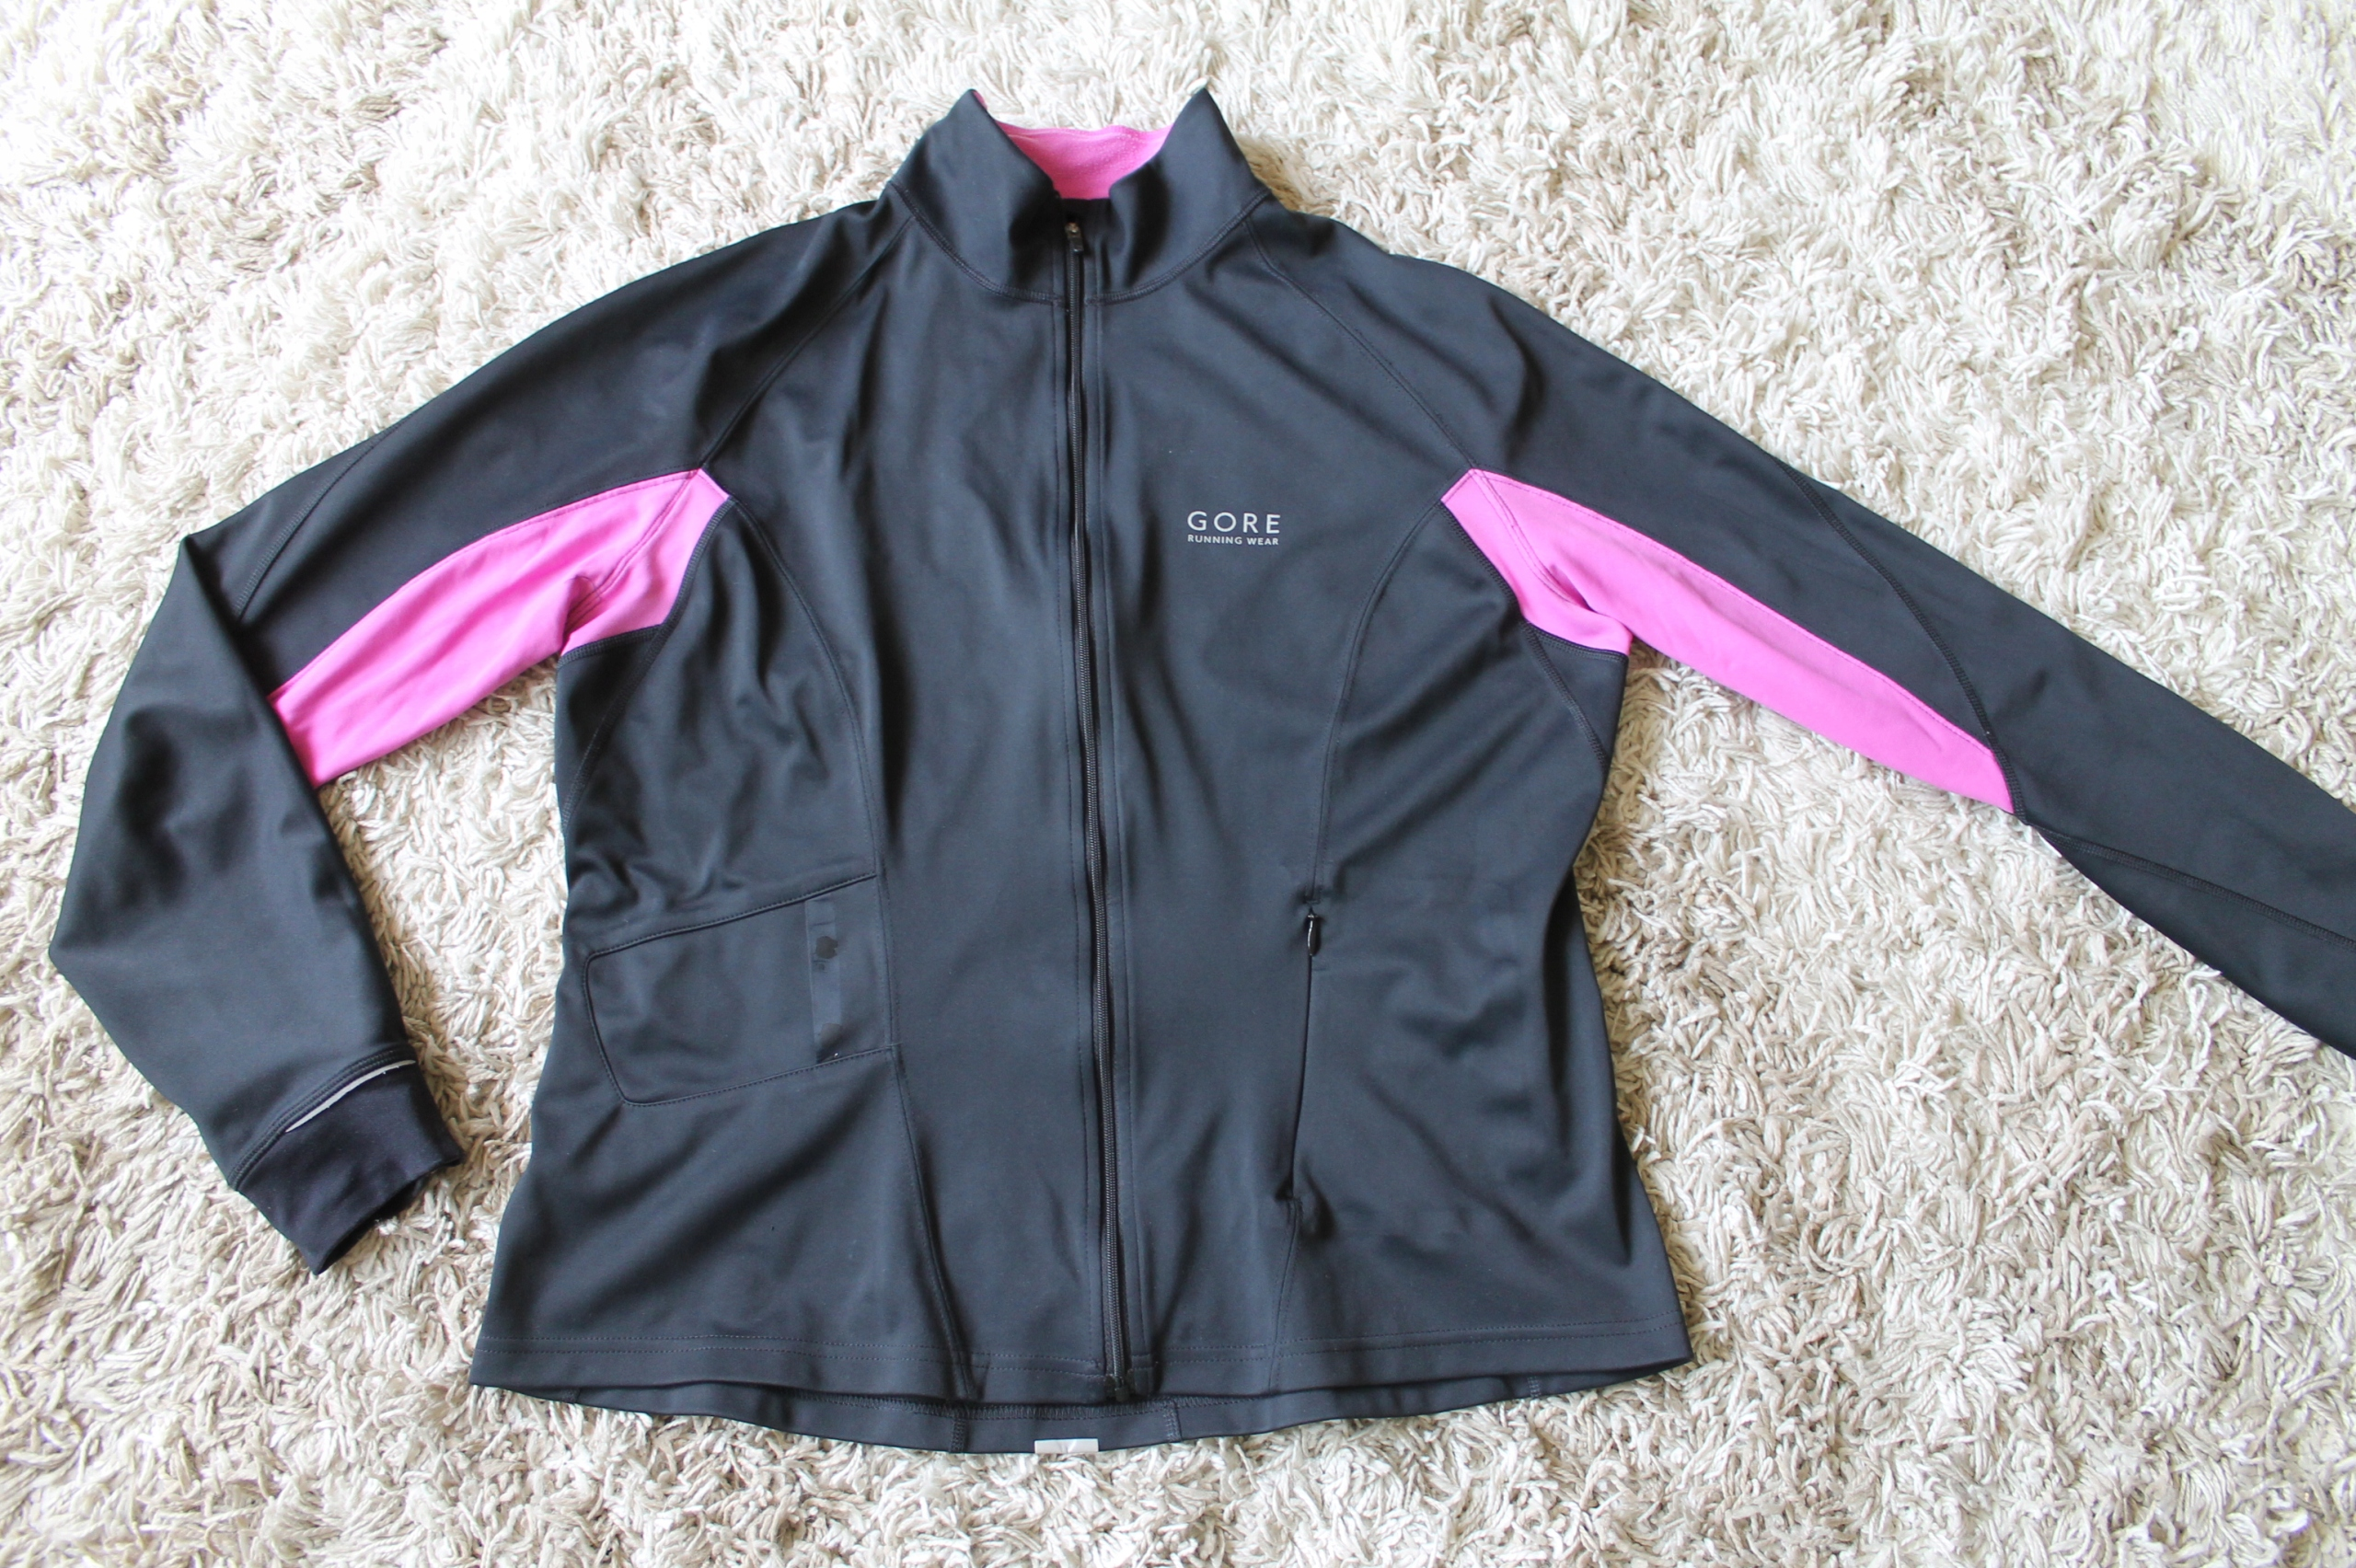 Softshell biegowy Gore windstopper - 40 lady